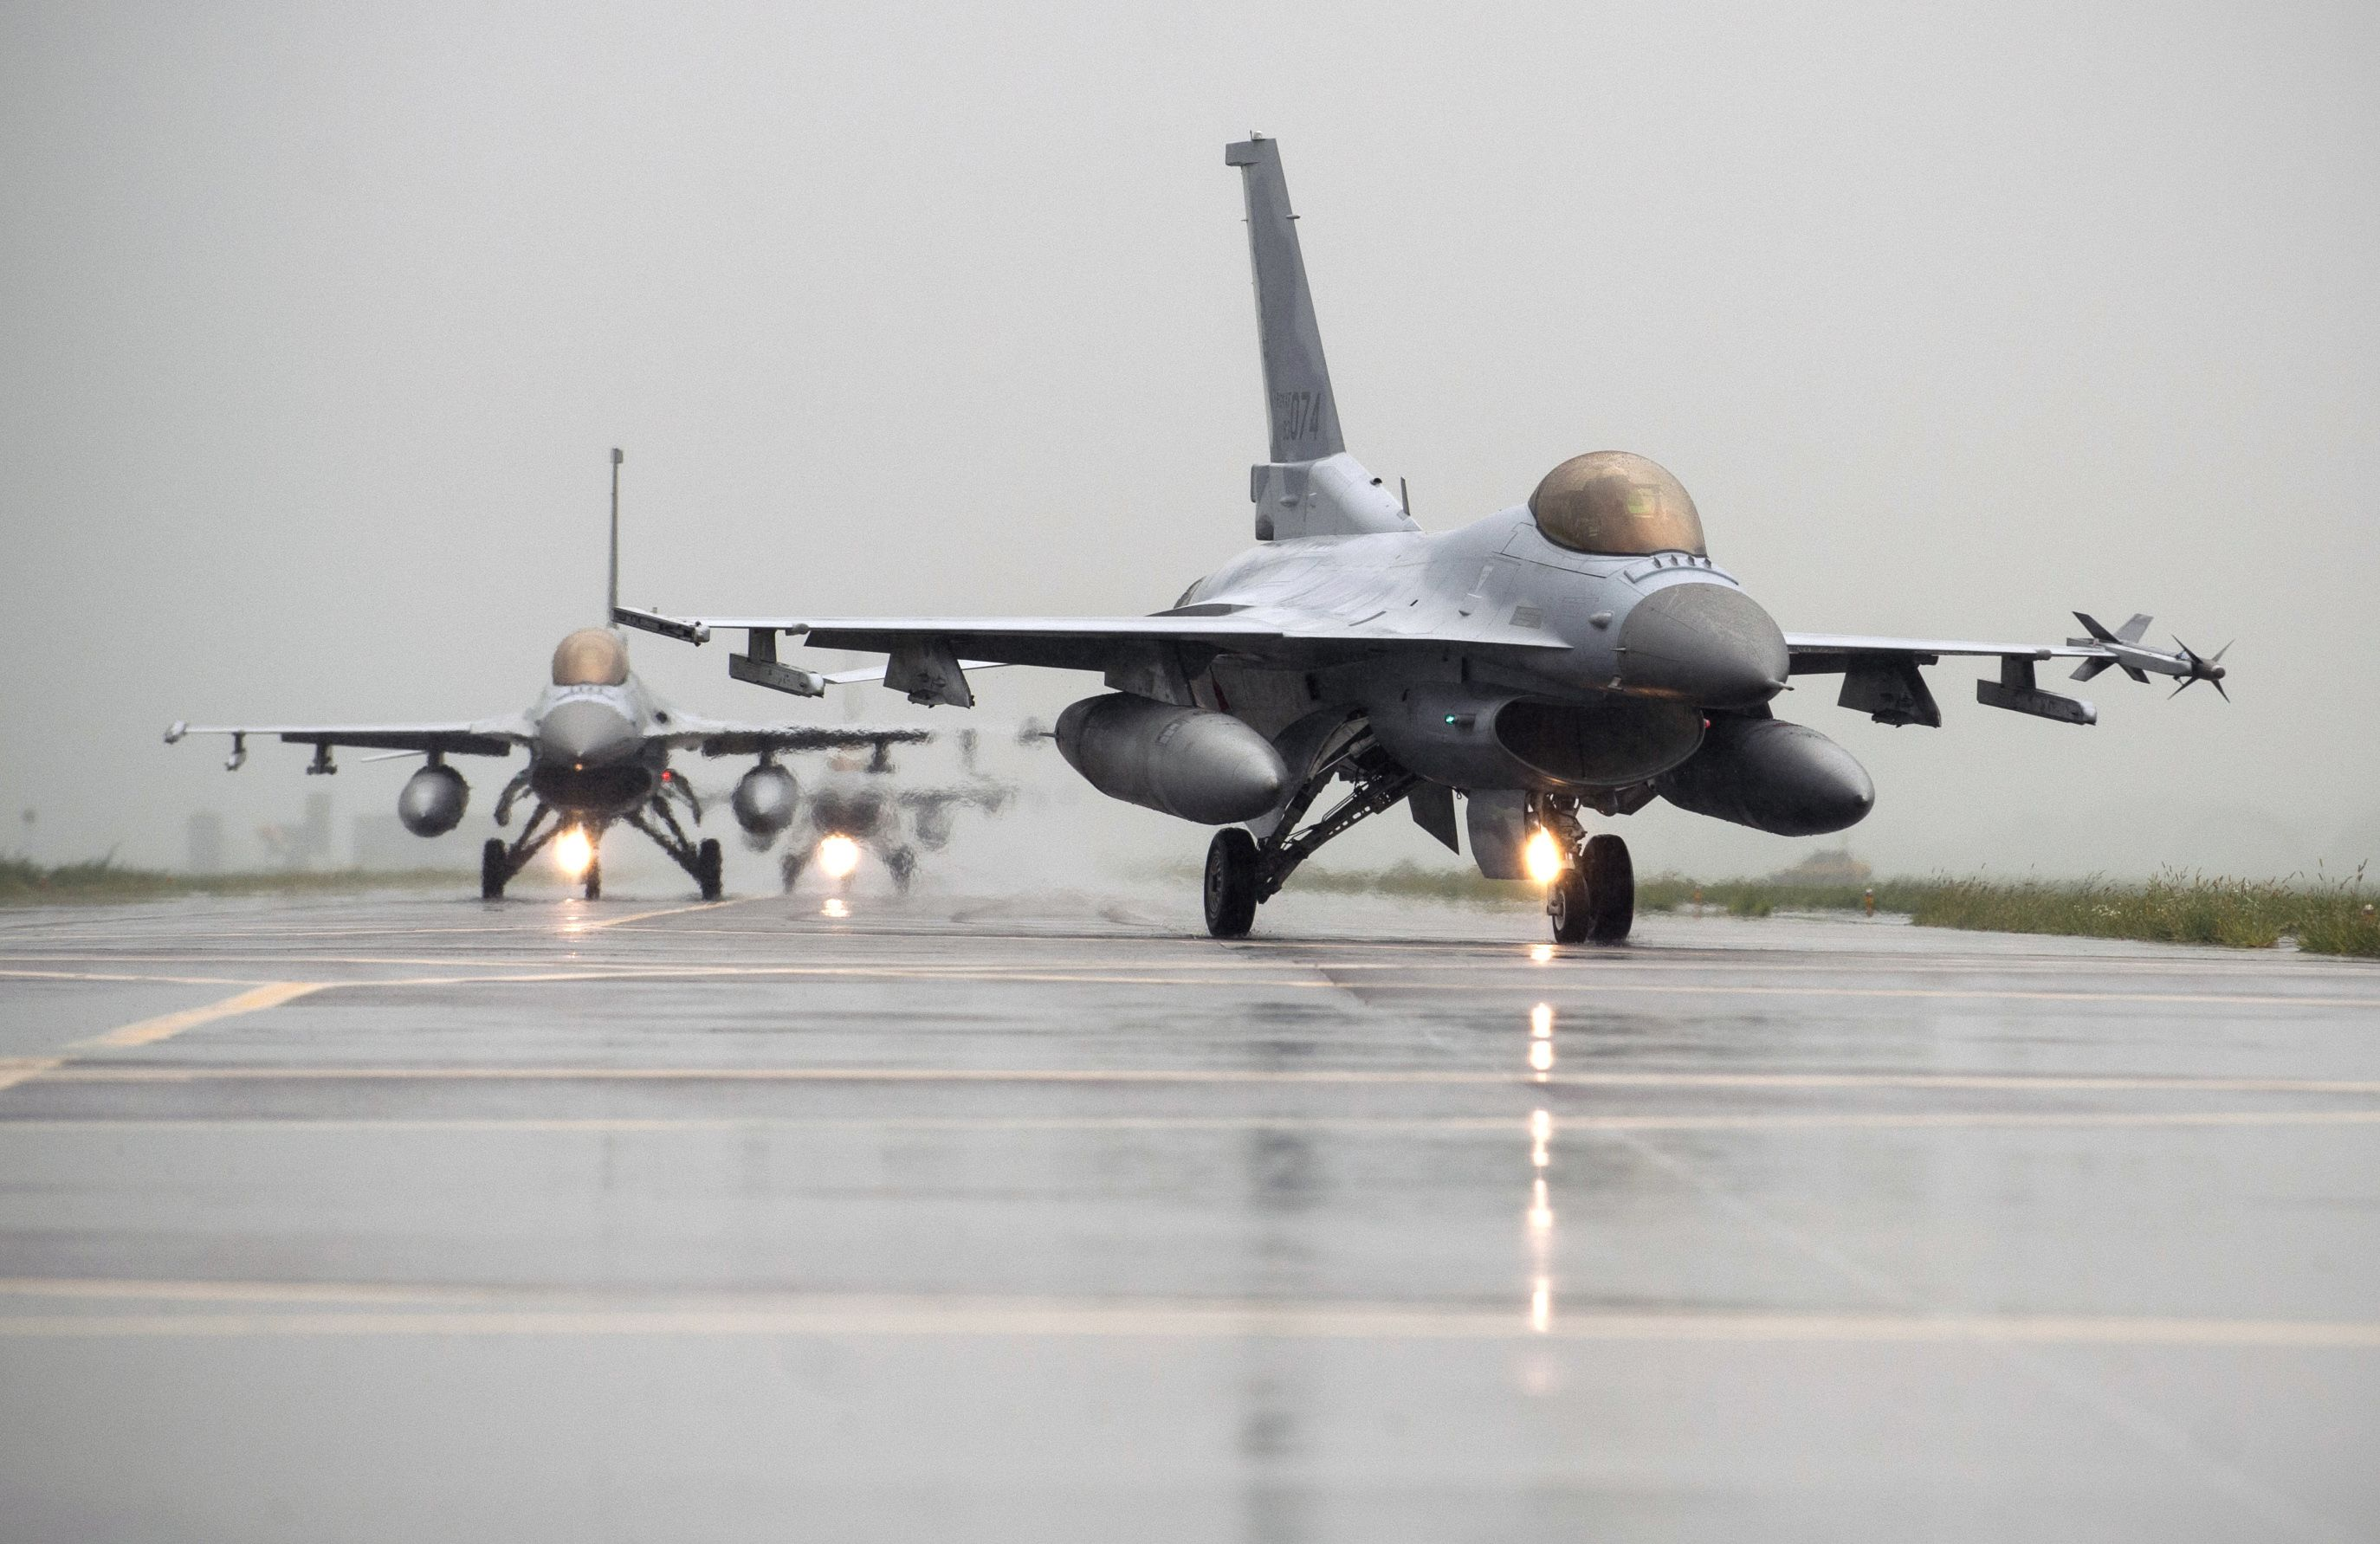 F 16 Fighting Falcons From Kunsan Air Base And South Korean Kf 16s Taxi To The Runway Together During Exercise Buddy Wing 14 8 At Seosan Air Base Republic F 16